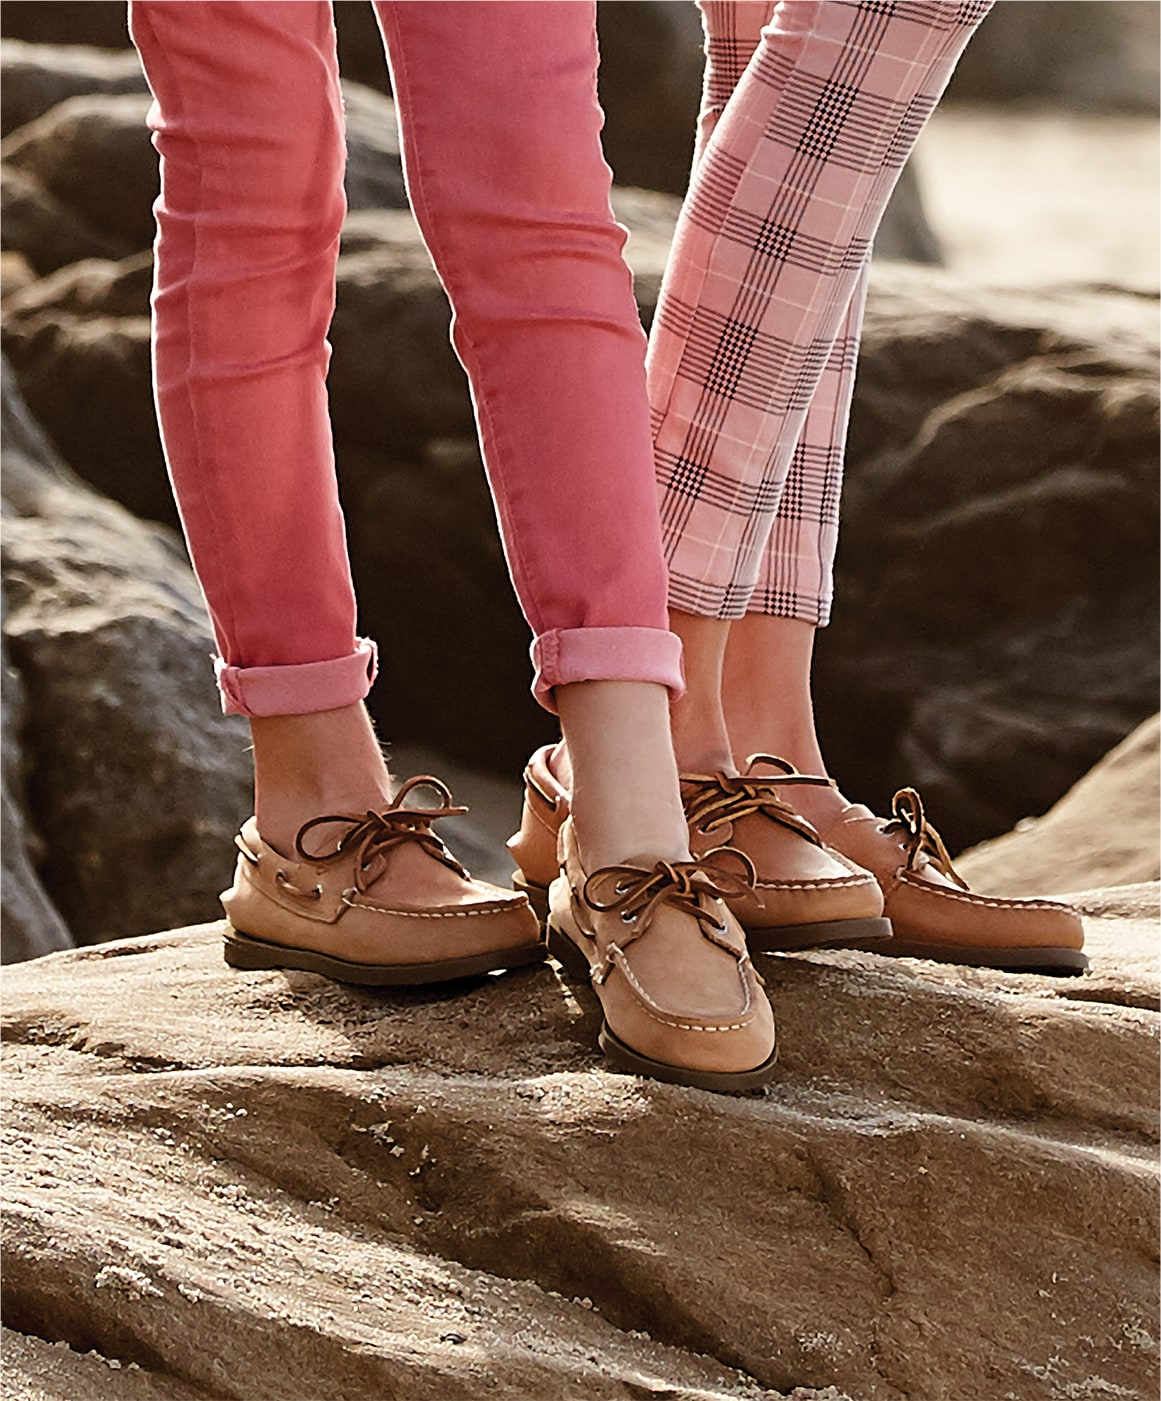 2 kids standing on a rock, wearying Sperry boat shoes.